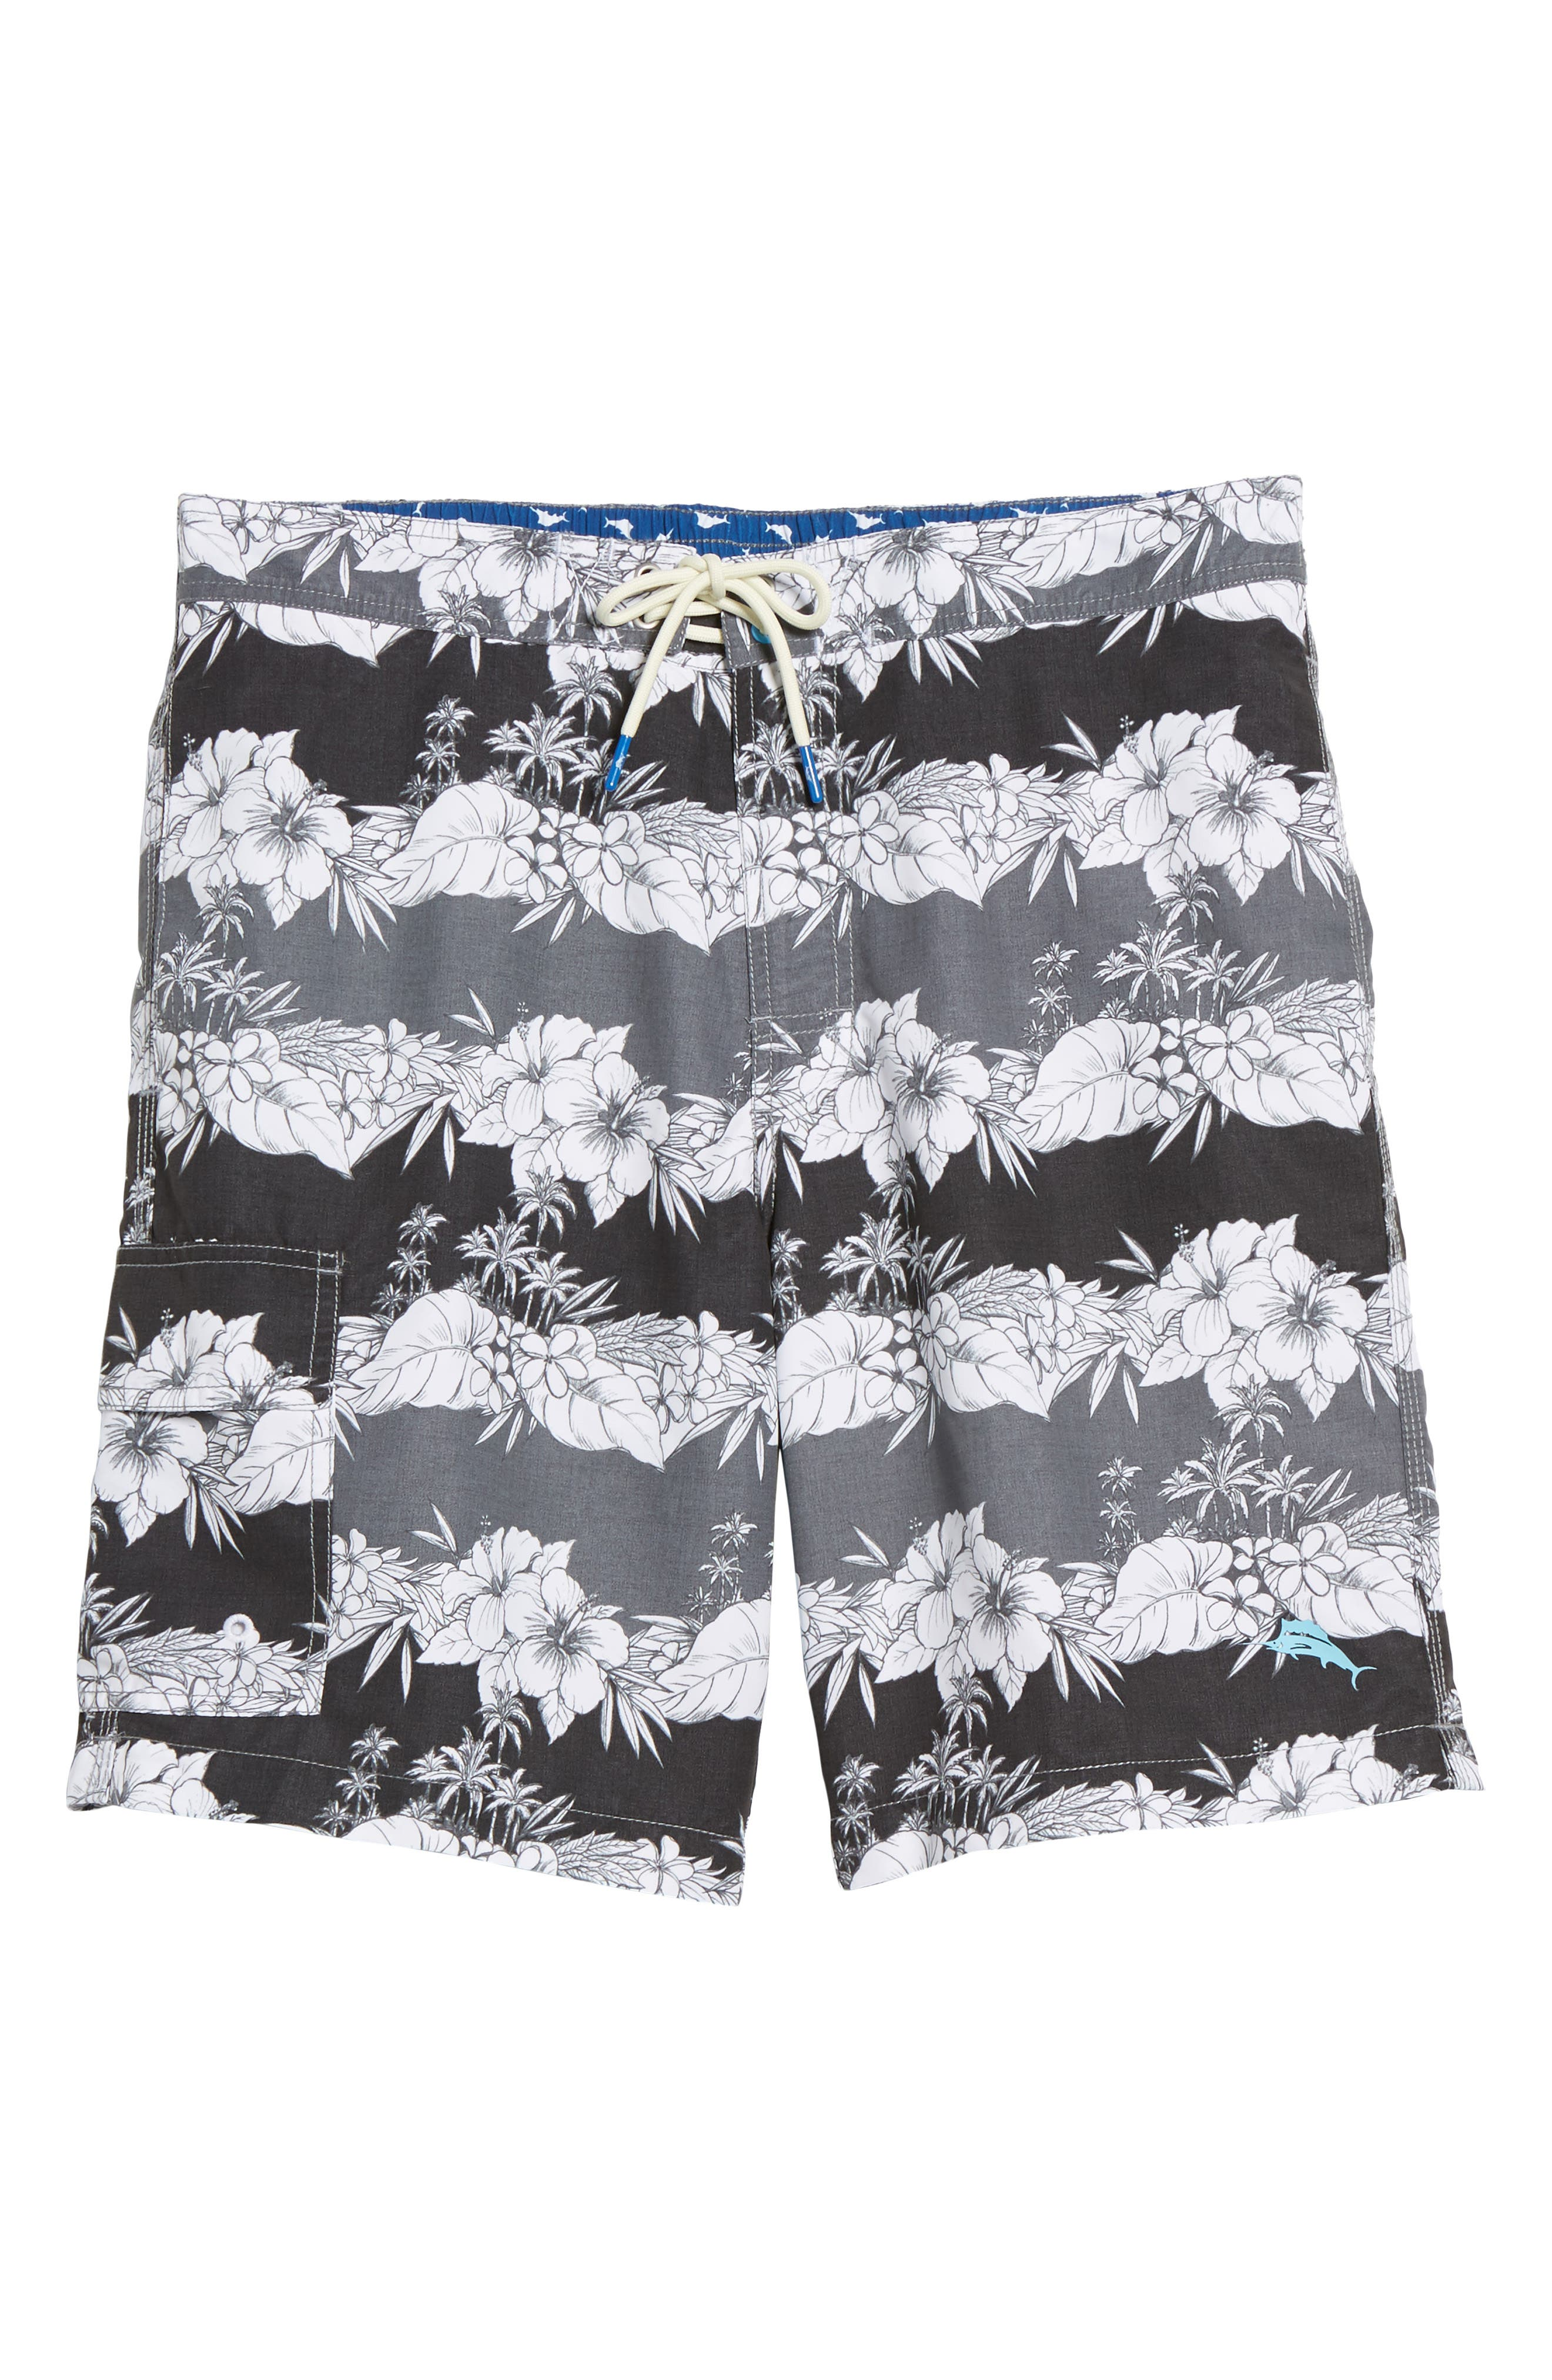 Baja Sky Vines Swim Trunks,                             Alternate thumbnail 6, color,                             001